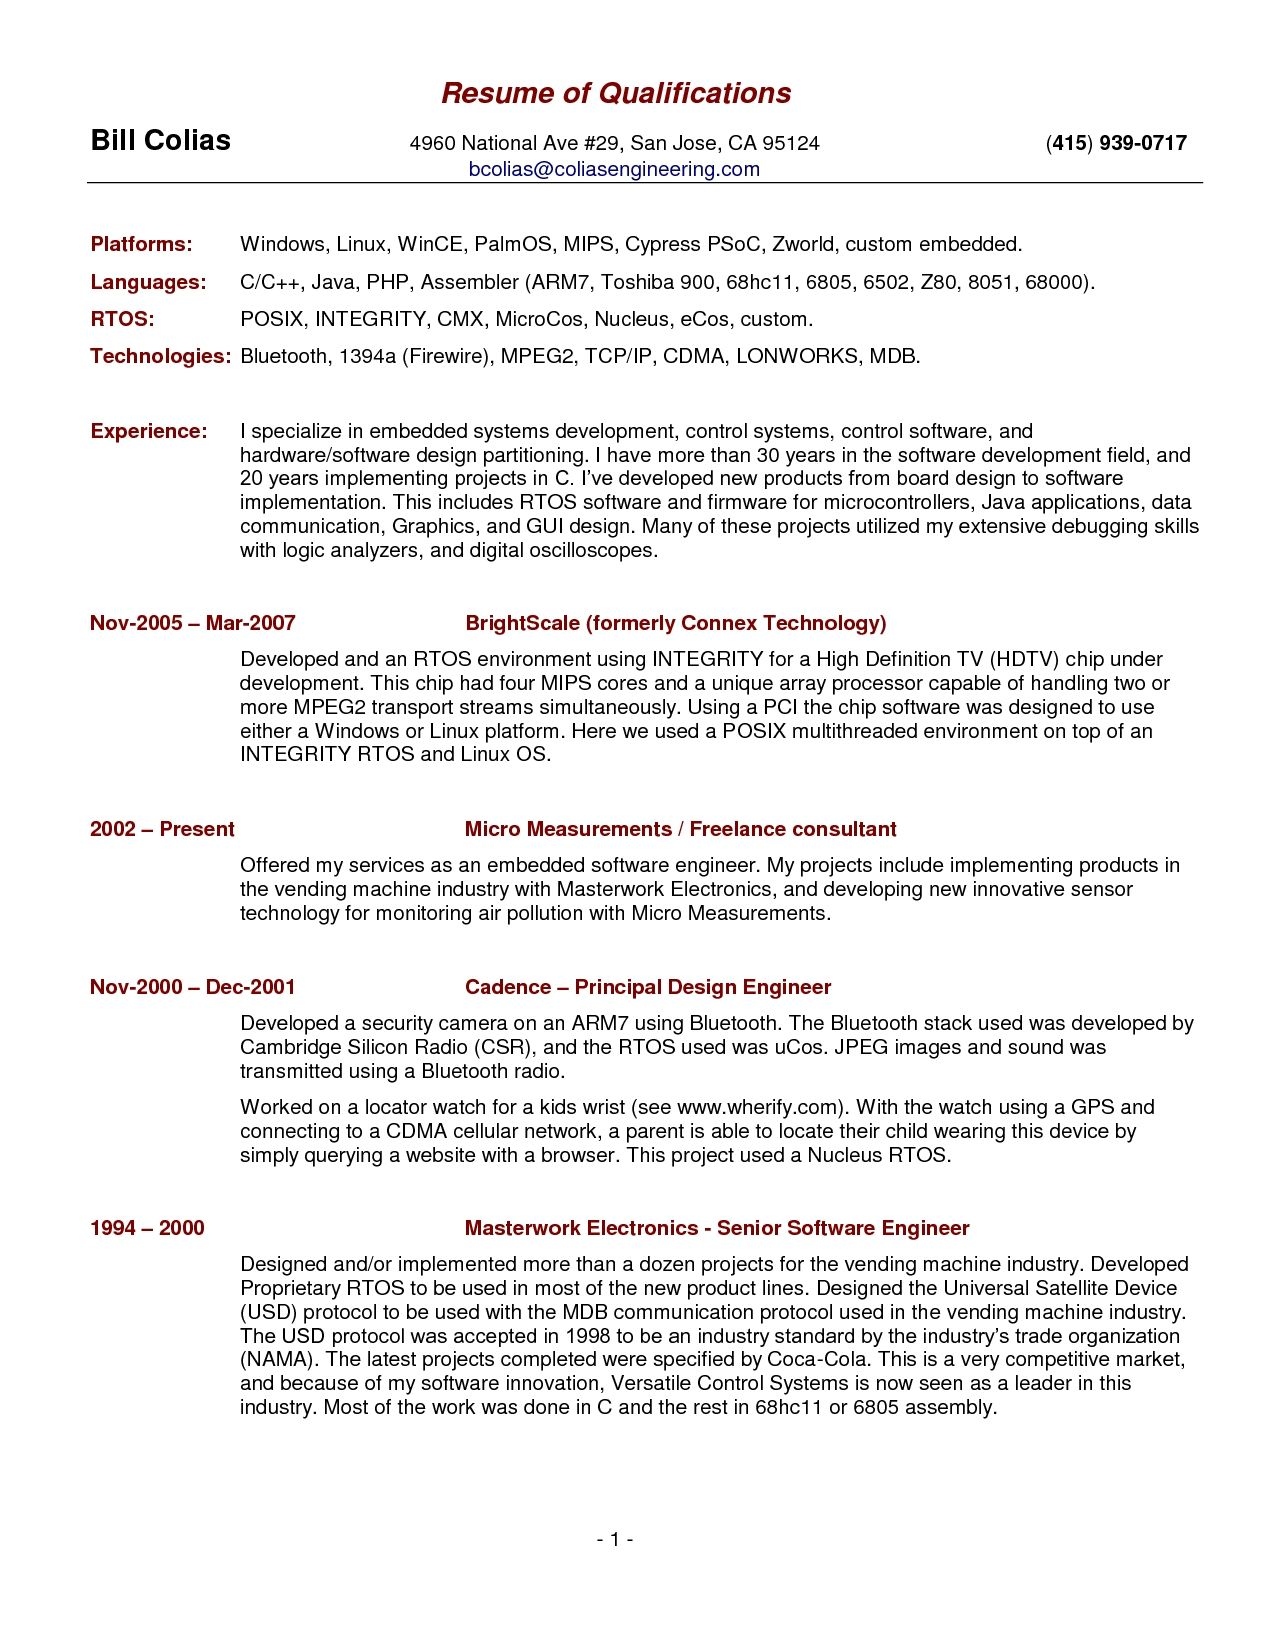 Job Qualifications Sample Skylogic Skills Resume Examples